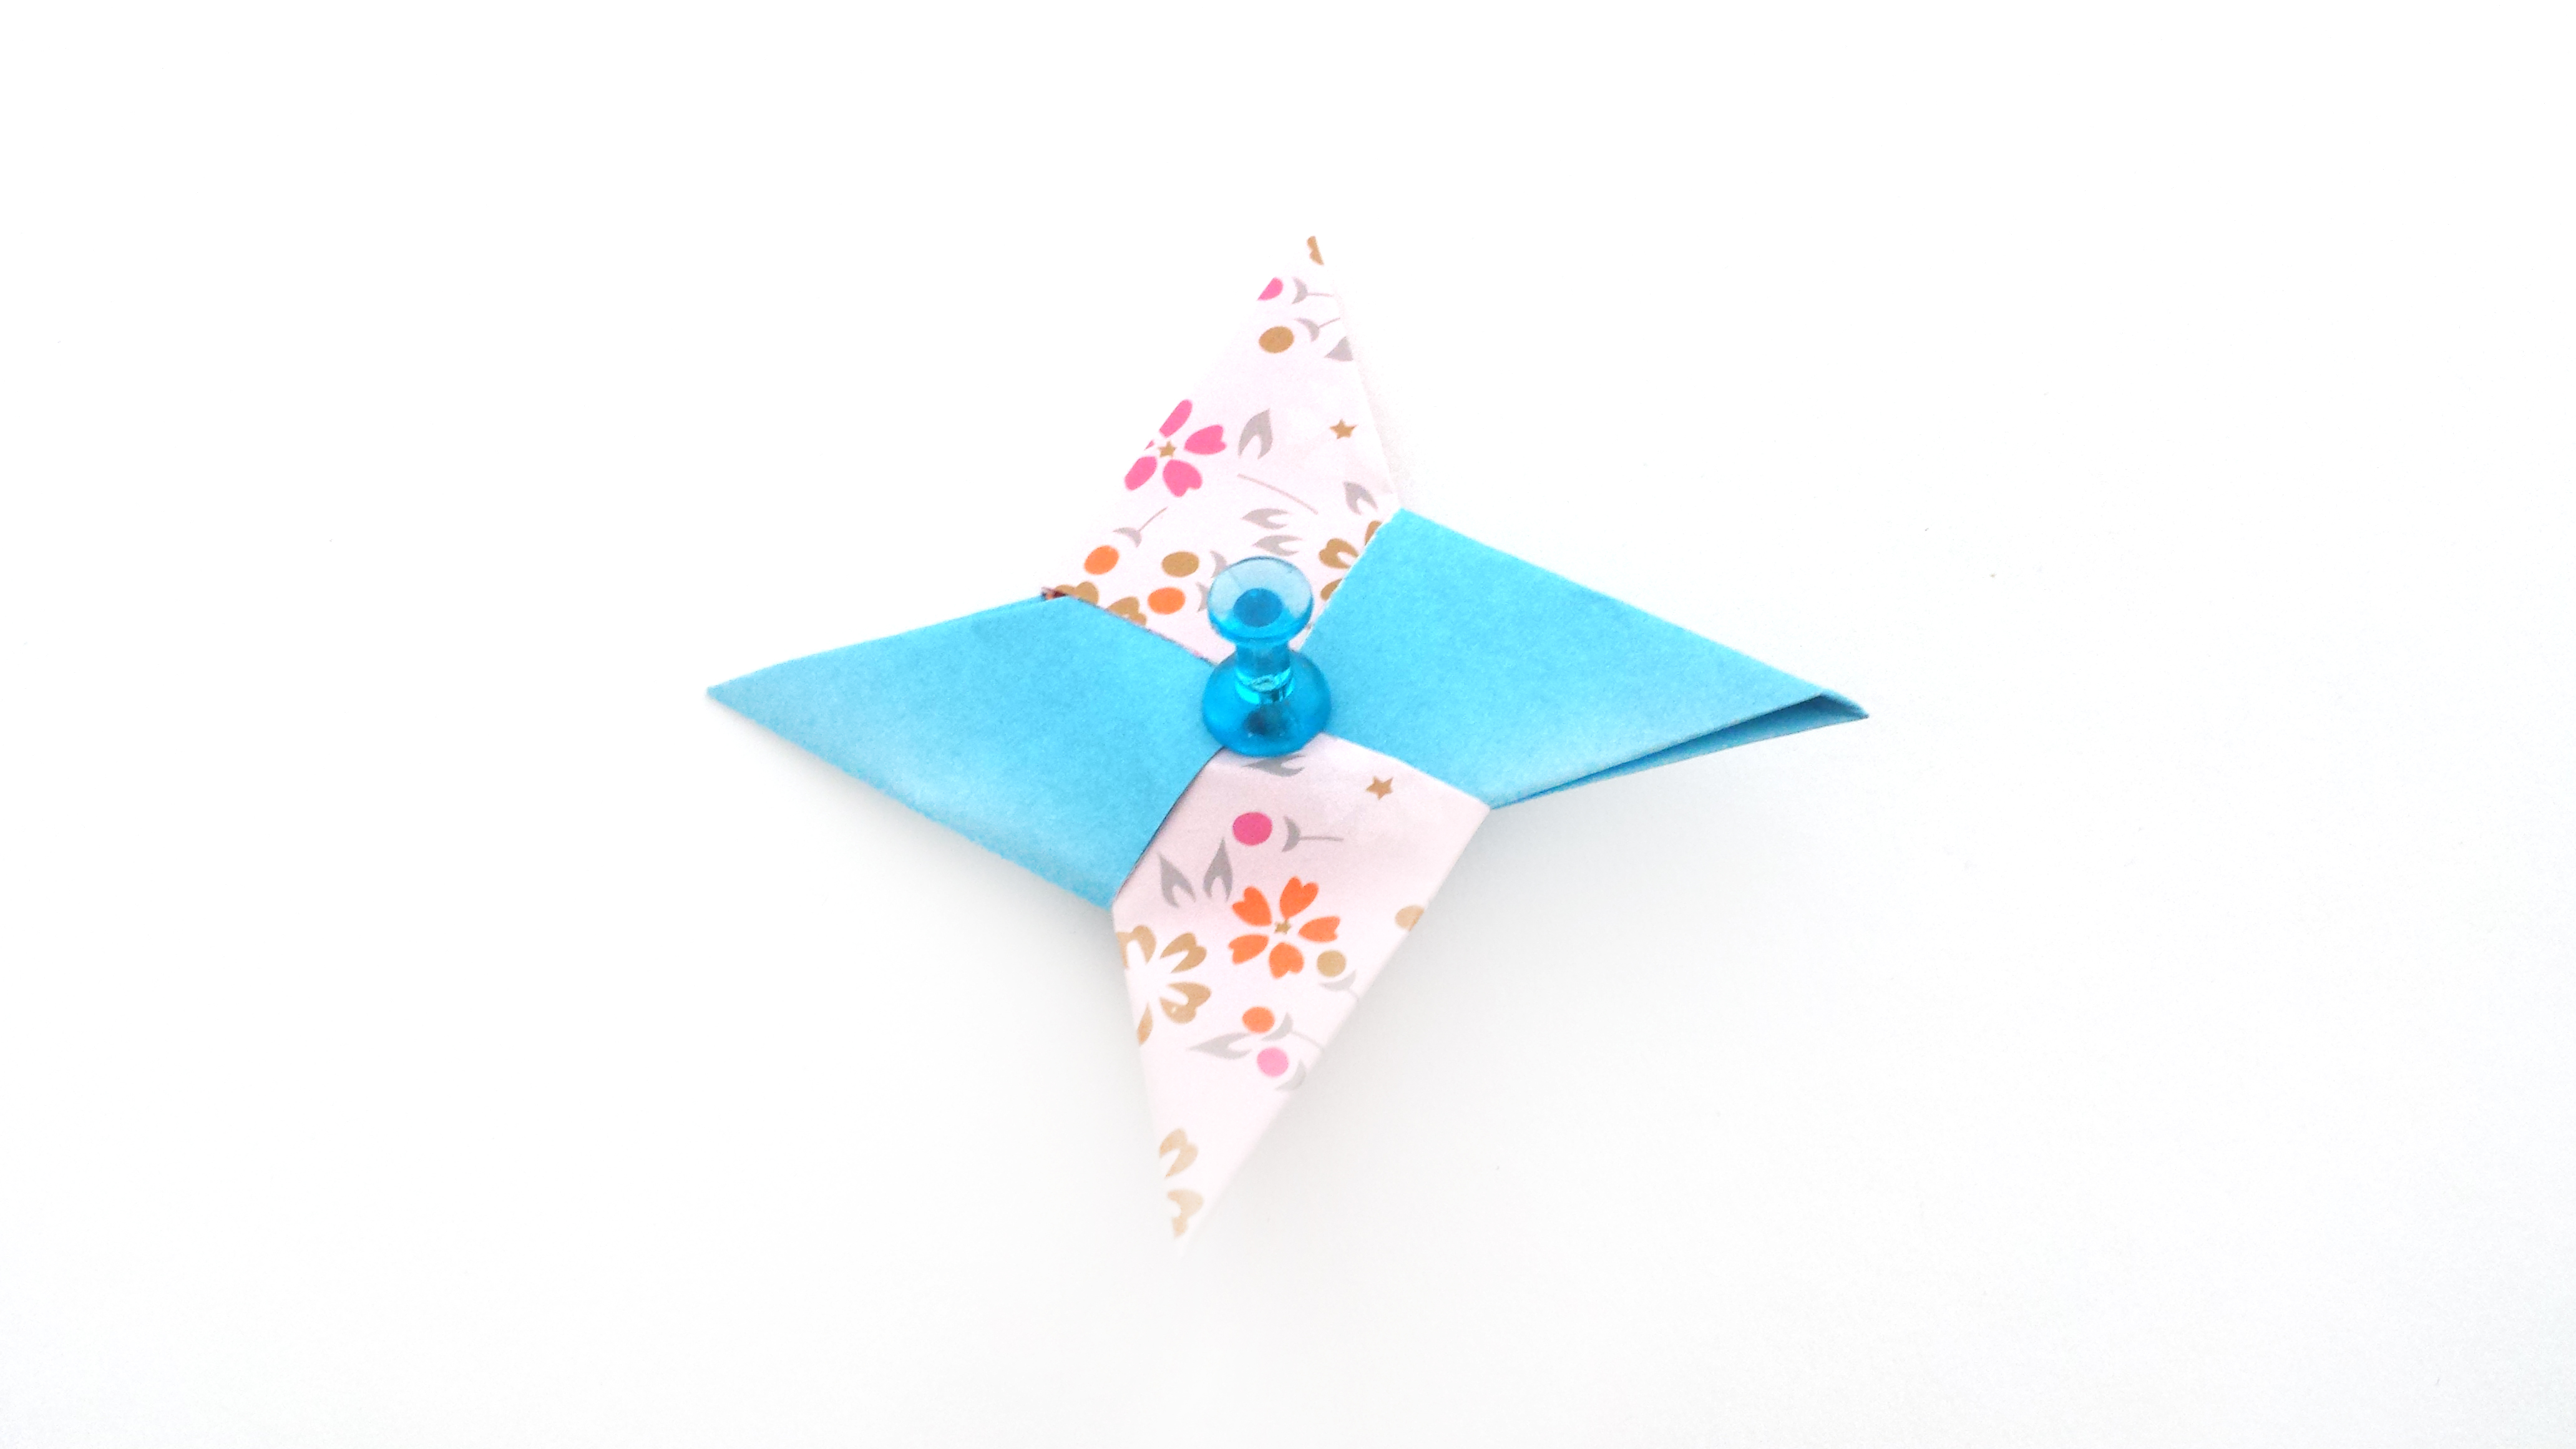 Origami Fidget Spinner - photo#16